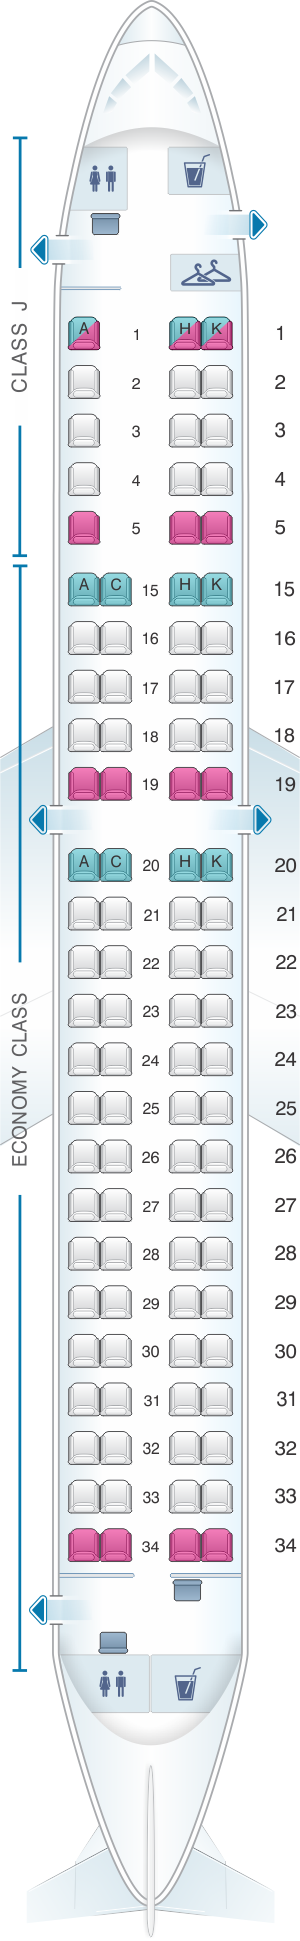 Seat map for Japan Airlines (JAL) Embraer 190 M11